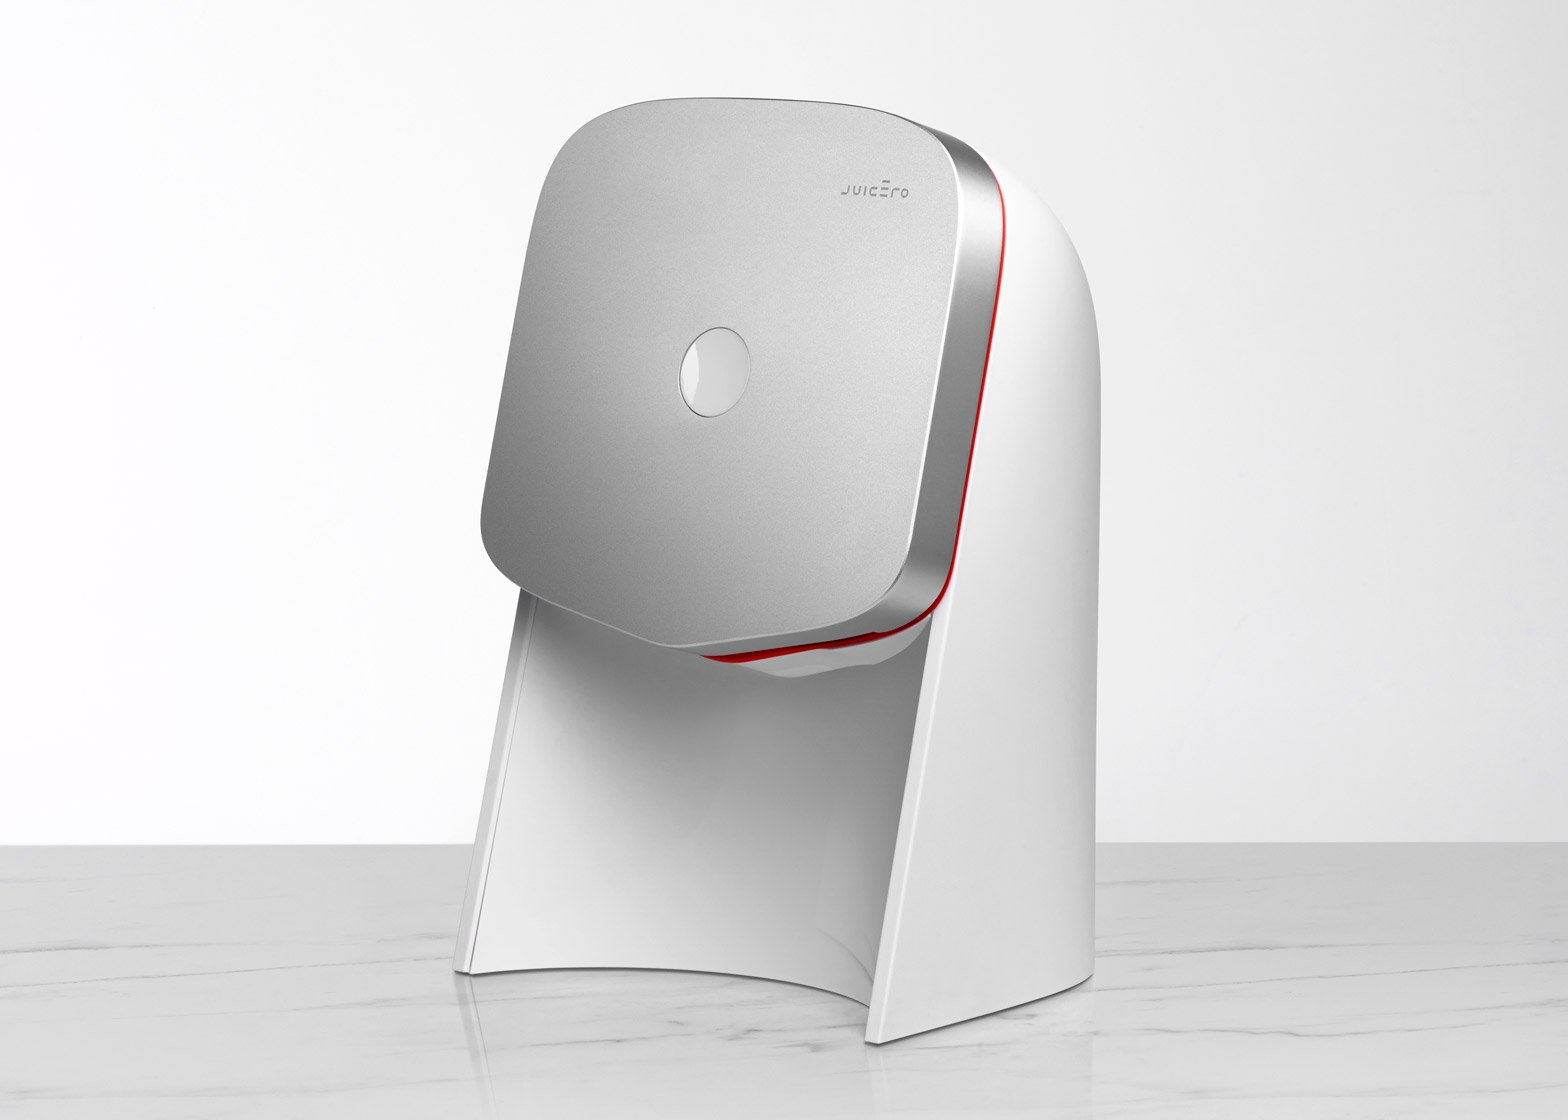 Juicero Is The 400 Juicer That Is Shaking Up Twitter For